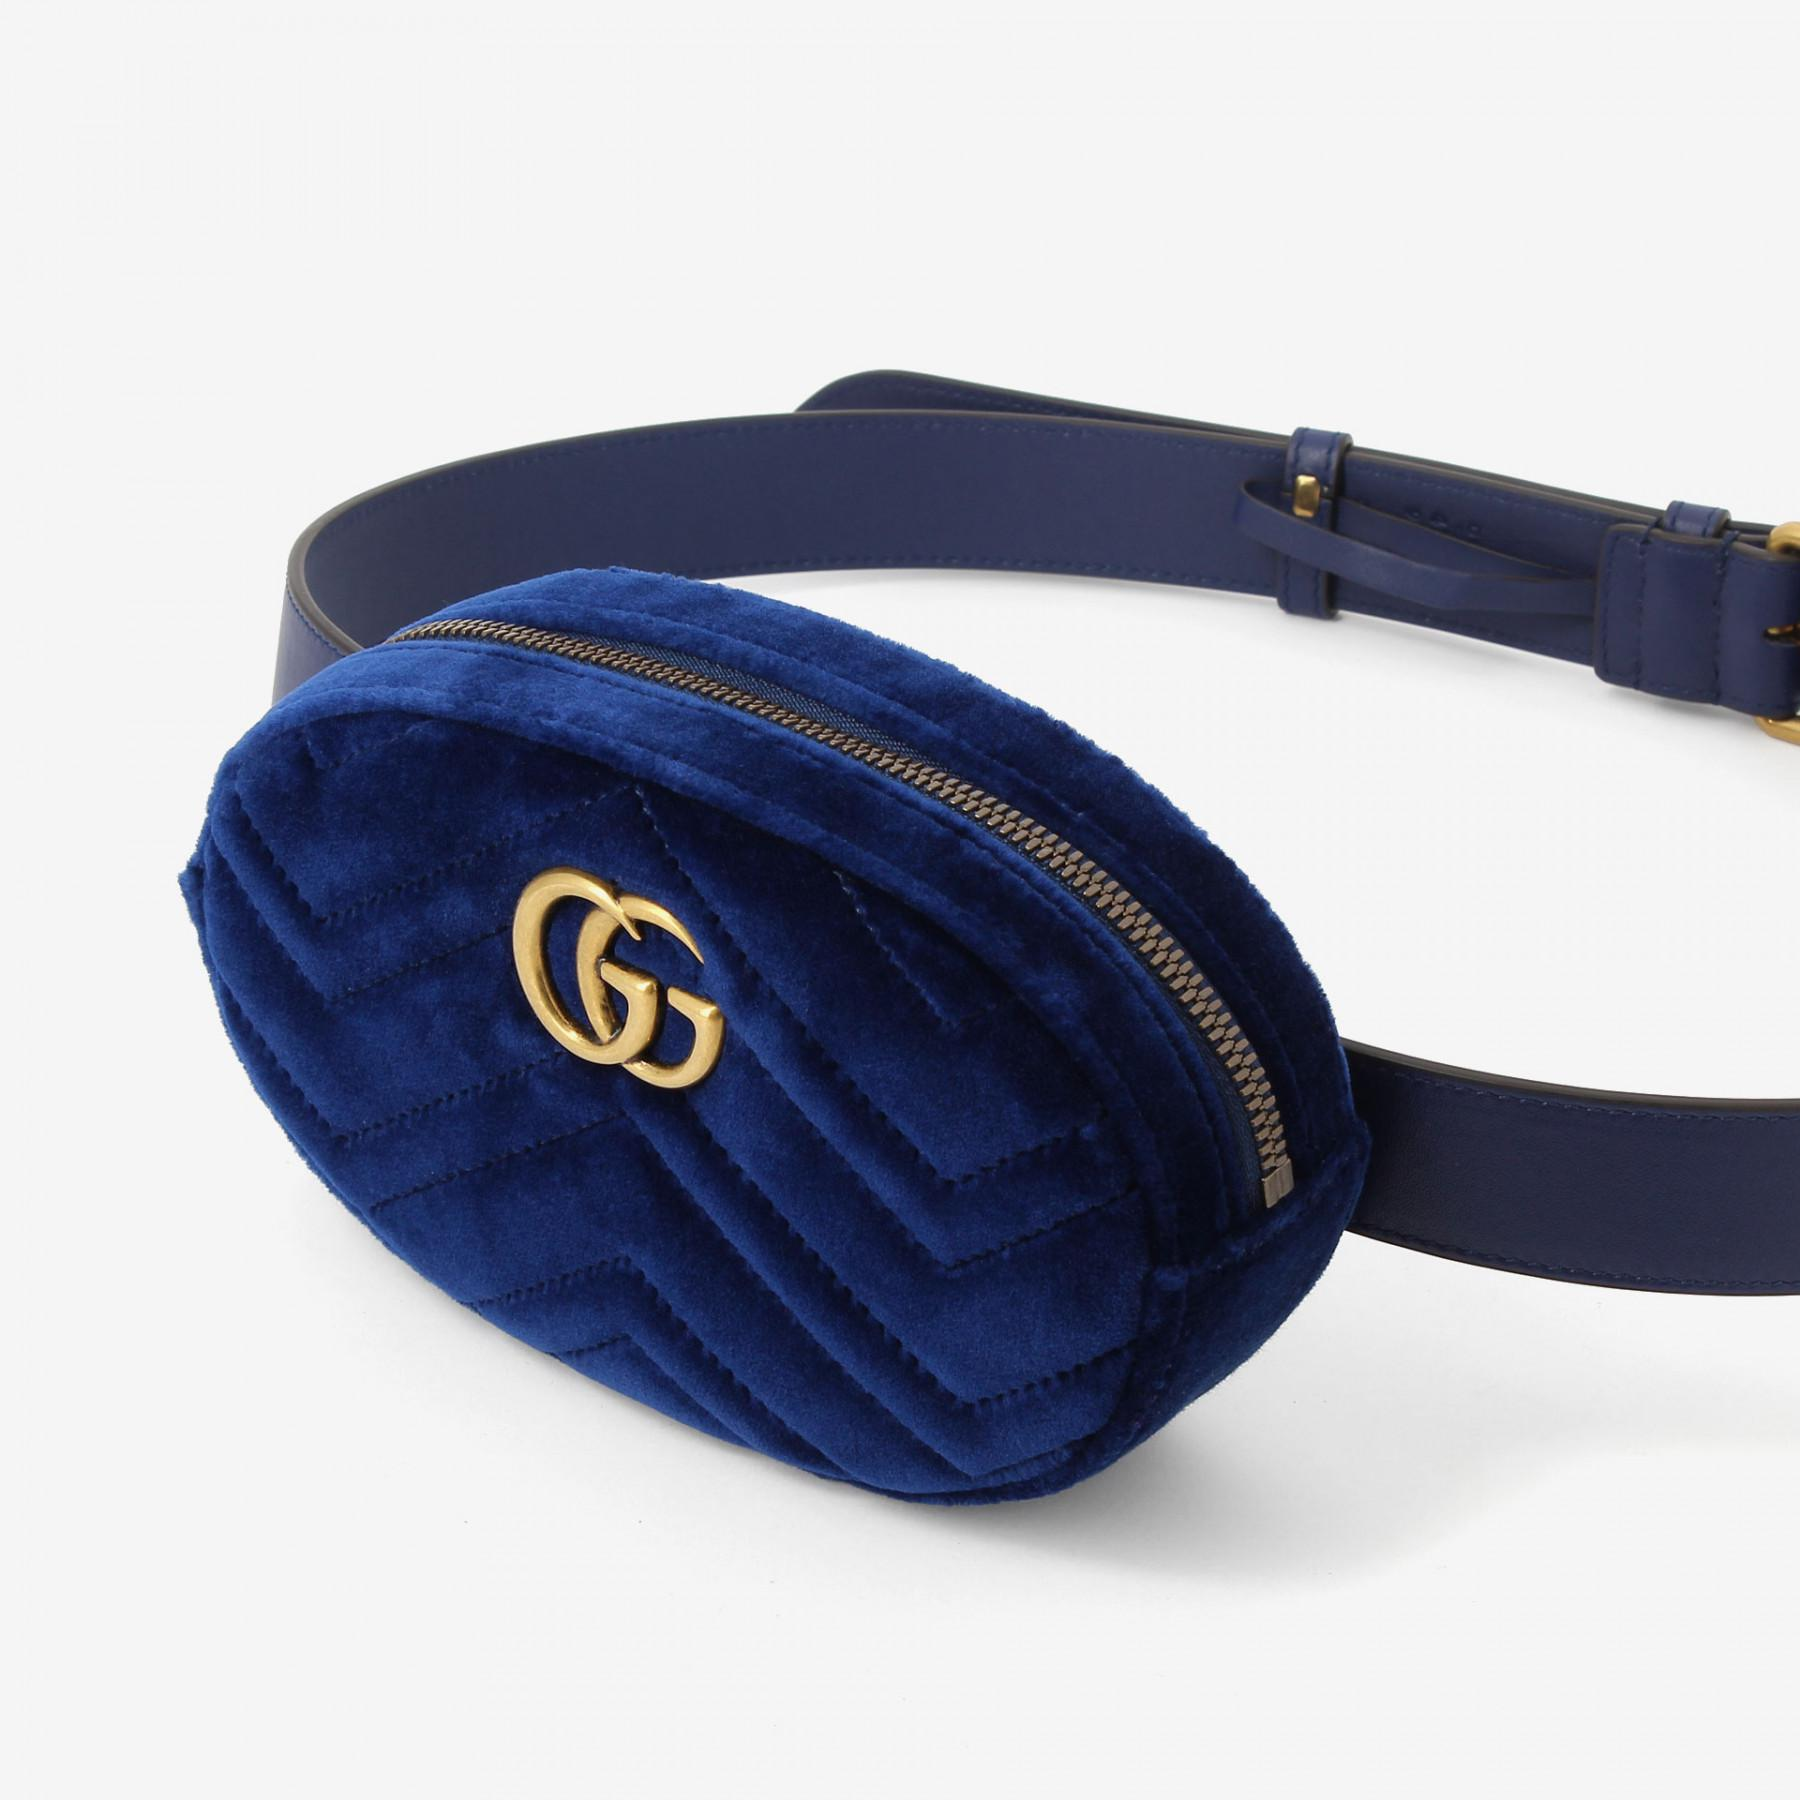 f324c3e999a Lyst - Gucci Velvet Marmont Belt Bag in Blue